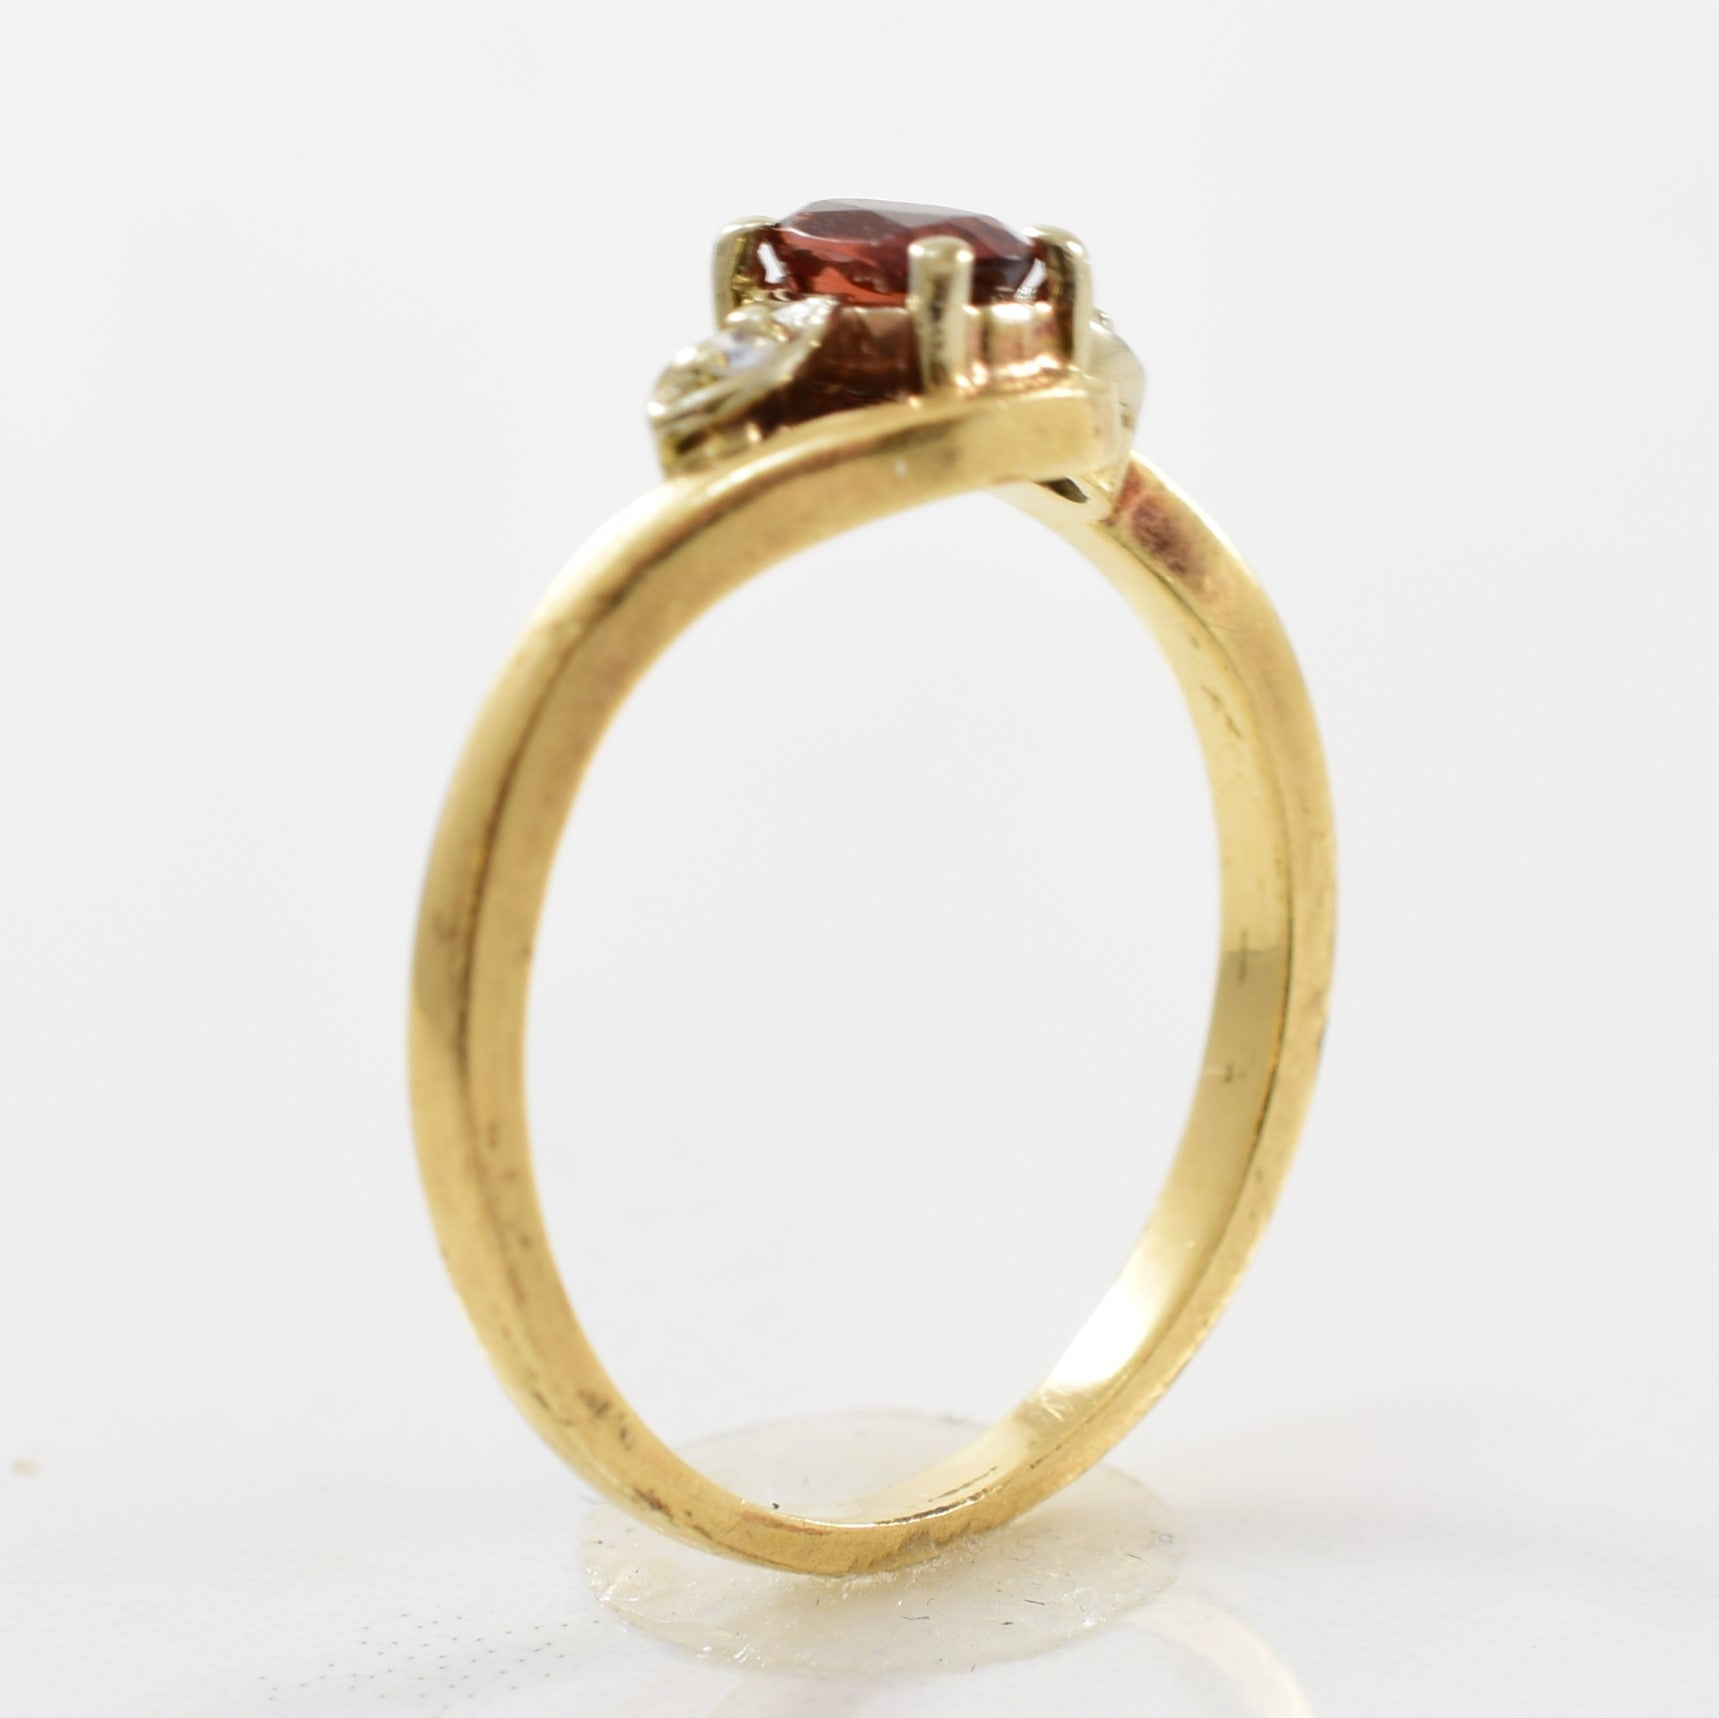 Garnet & Diamond Bypass Ring | 0.02ctw, 0.25ct | SZ 6.5 |